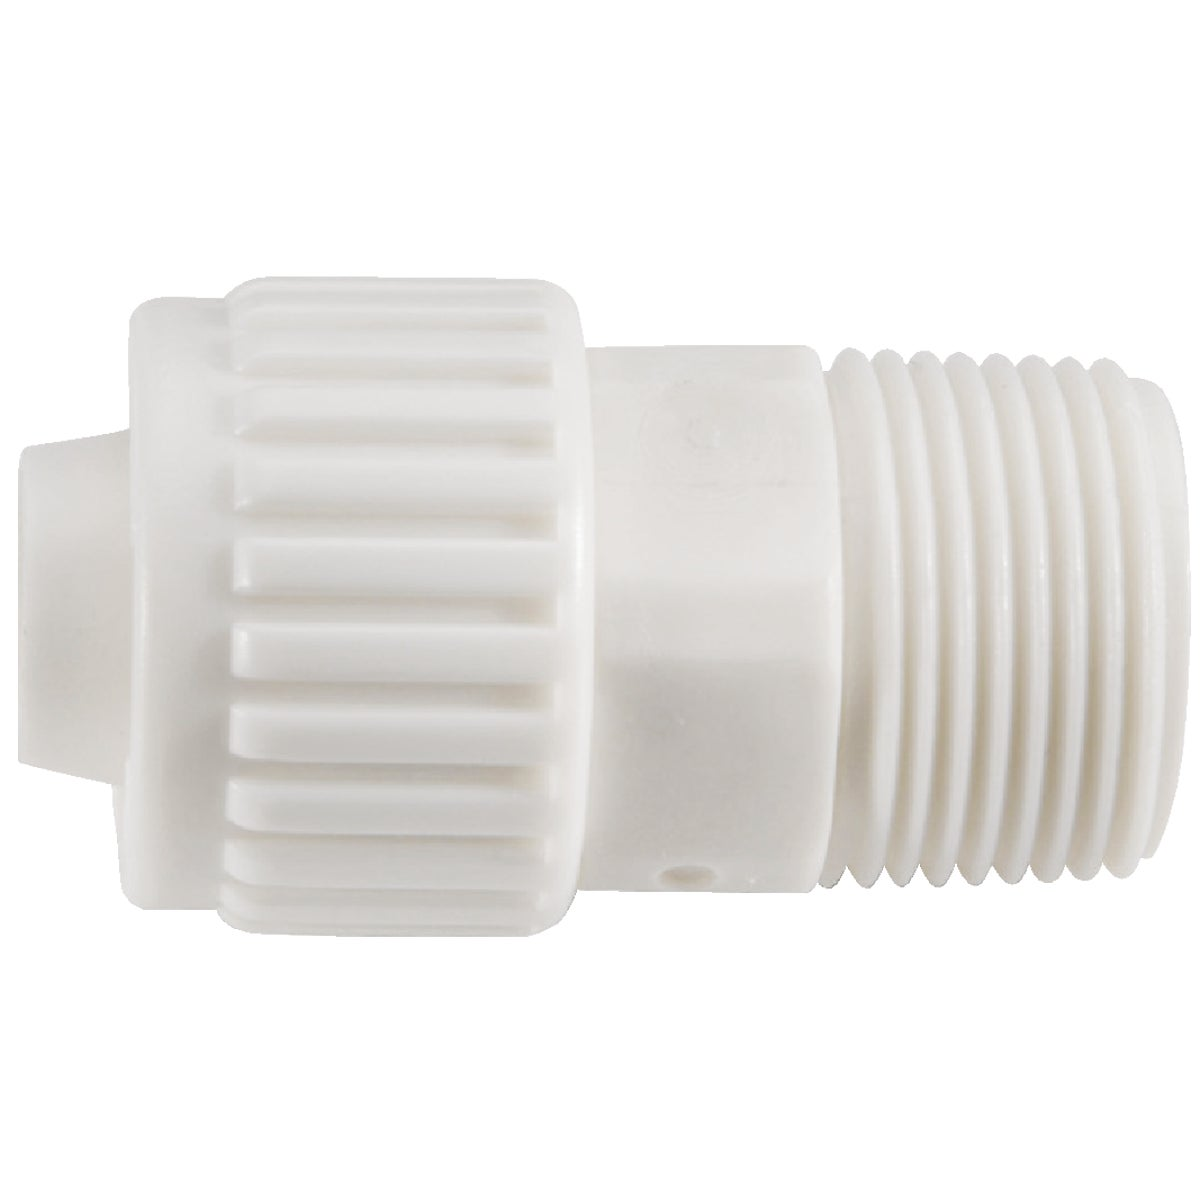 3/4X3/4MPT ADAPTER - 16872 by Flair It West